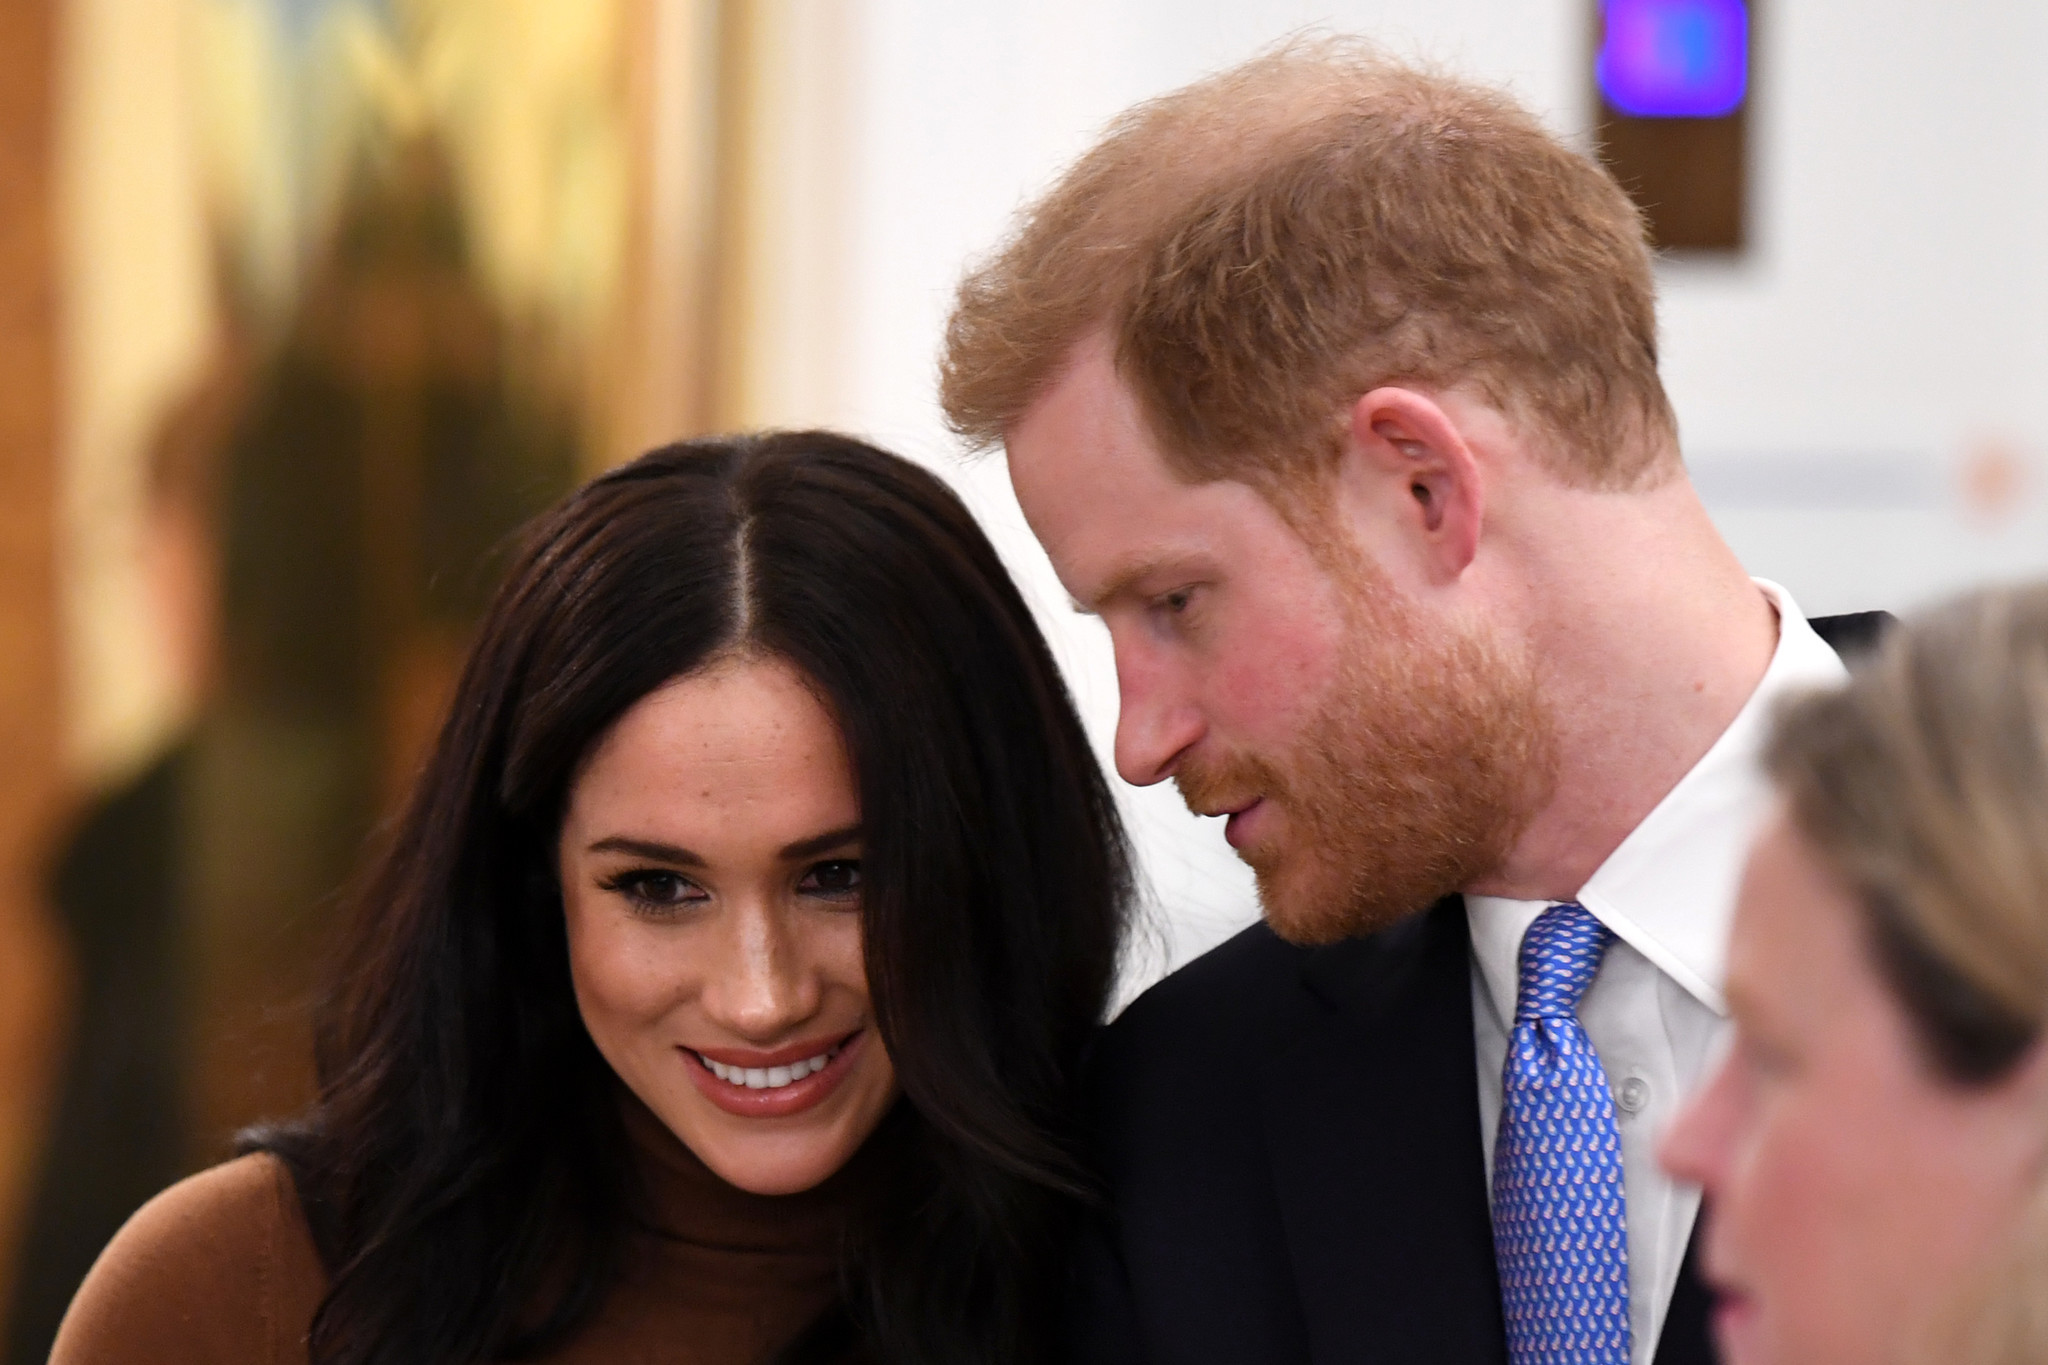 Prince Harry and Meghan Markle to give up their titles, Buckingham Palace says